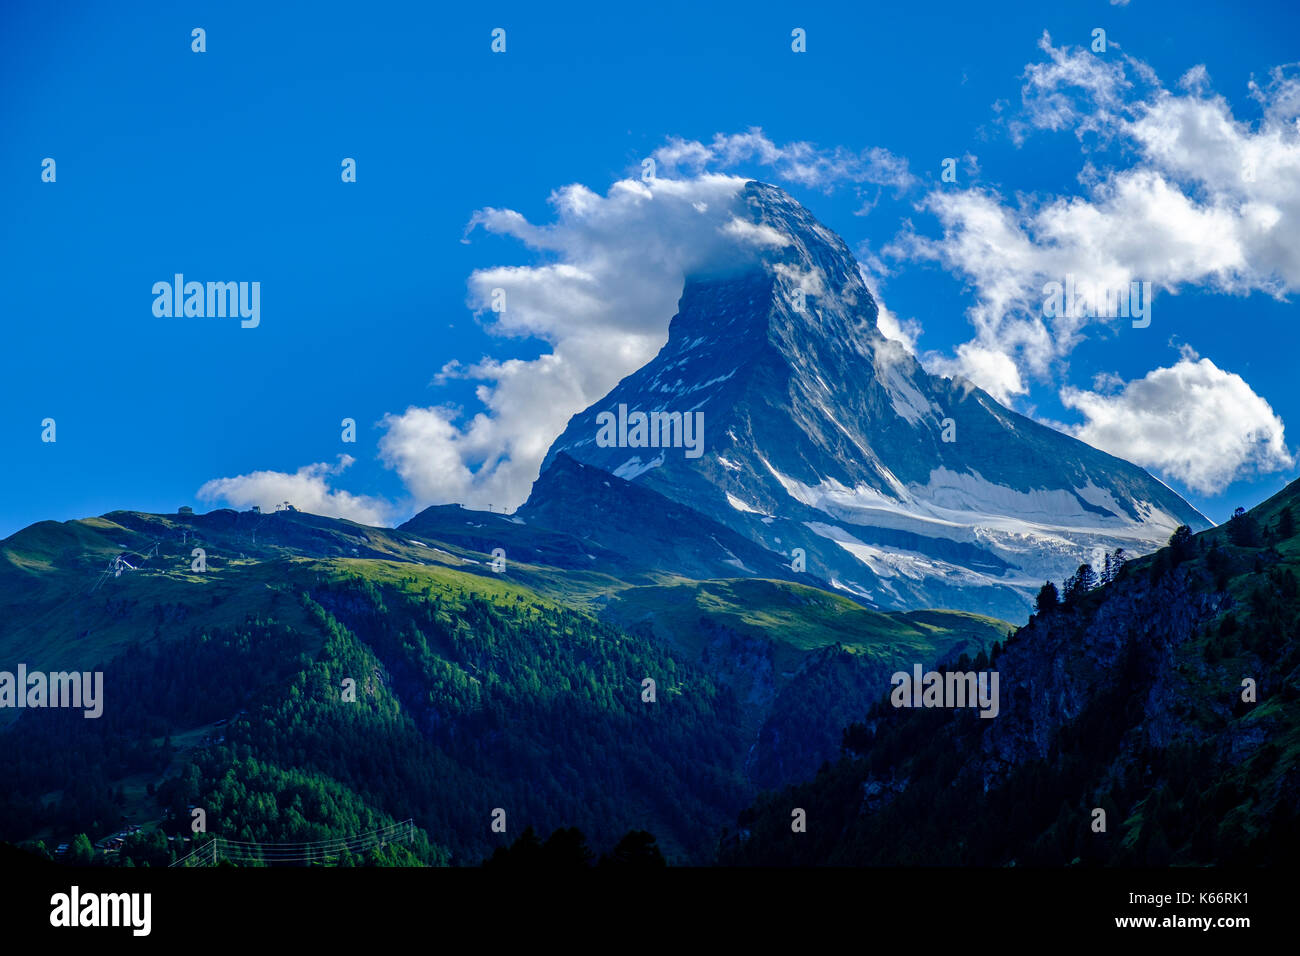 The East and North Face of the Matterhorn, Monte Cervino, with Clouds around the summit - Stock Image